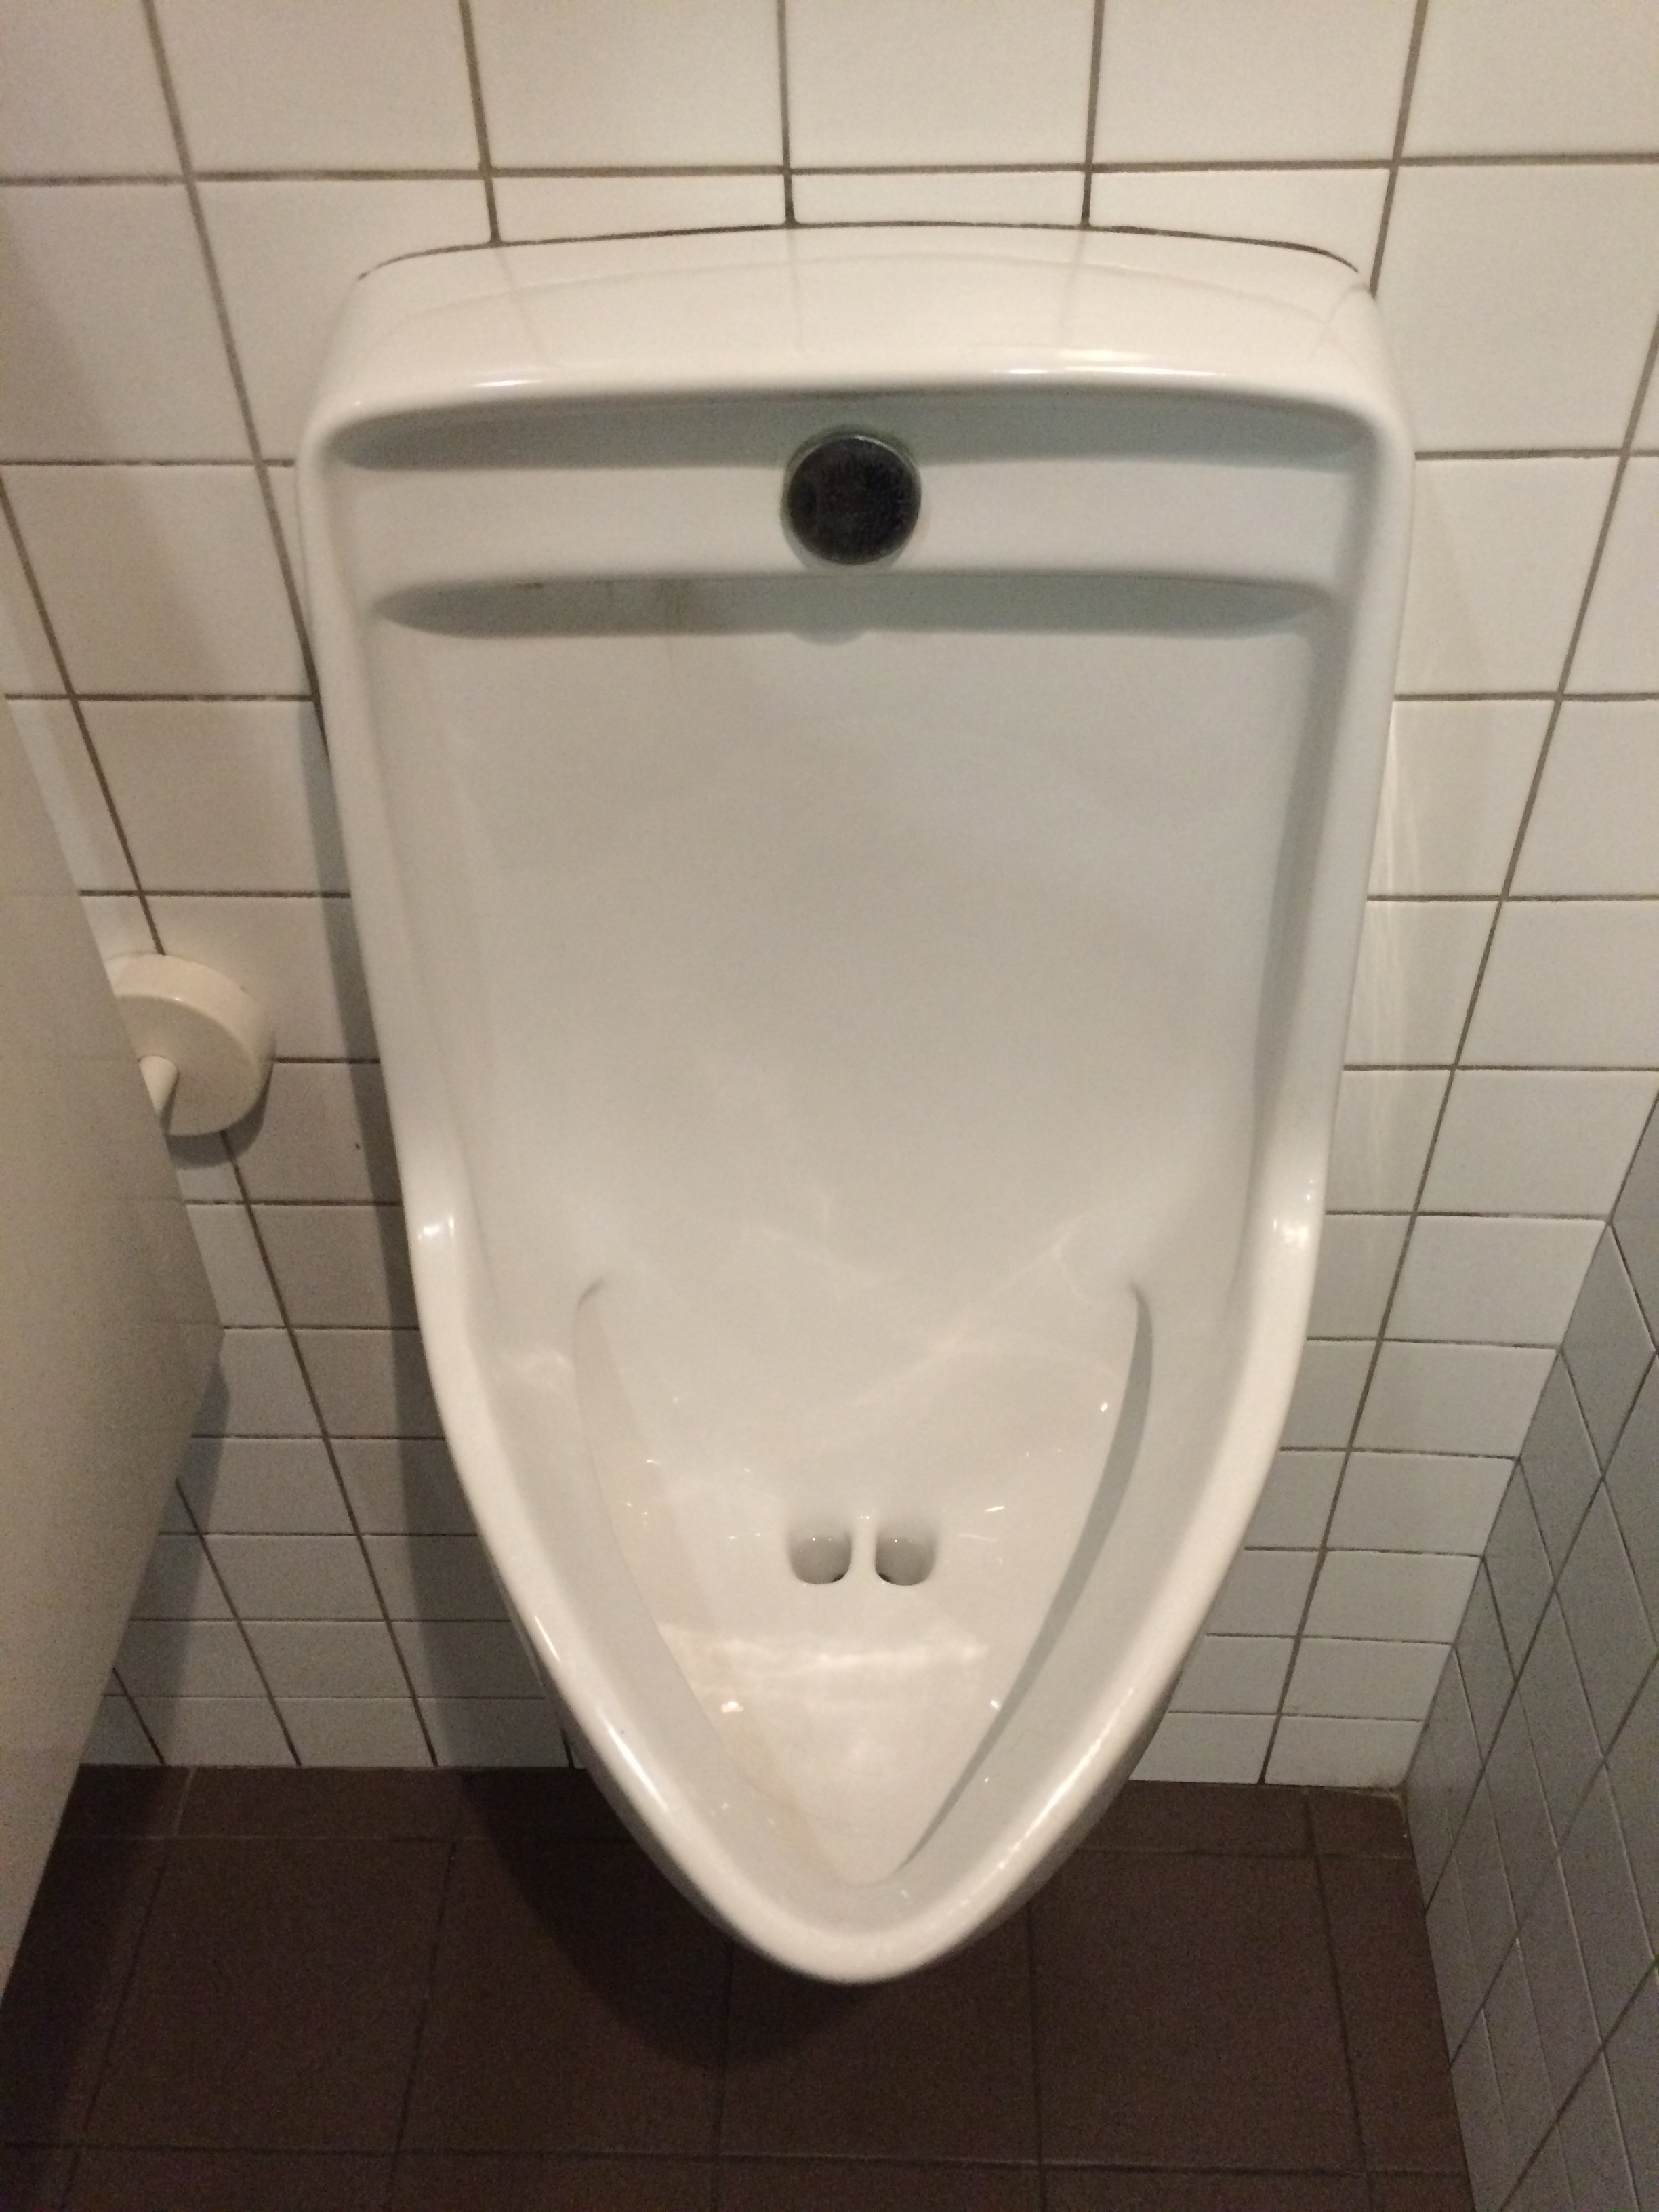 This urinal at the museum had nostrils. I felt like that should be shared with the world.